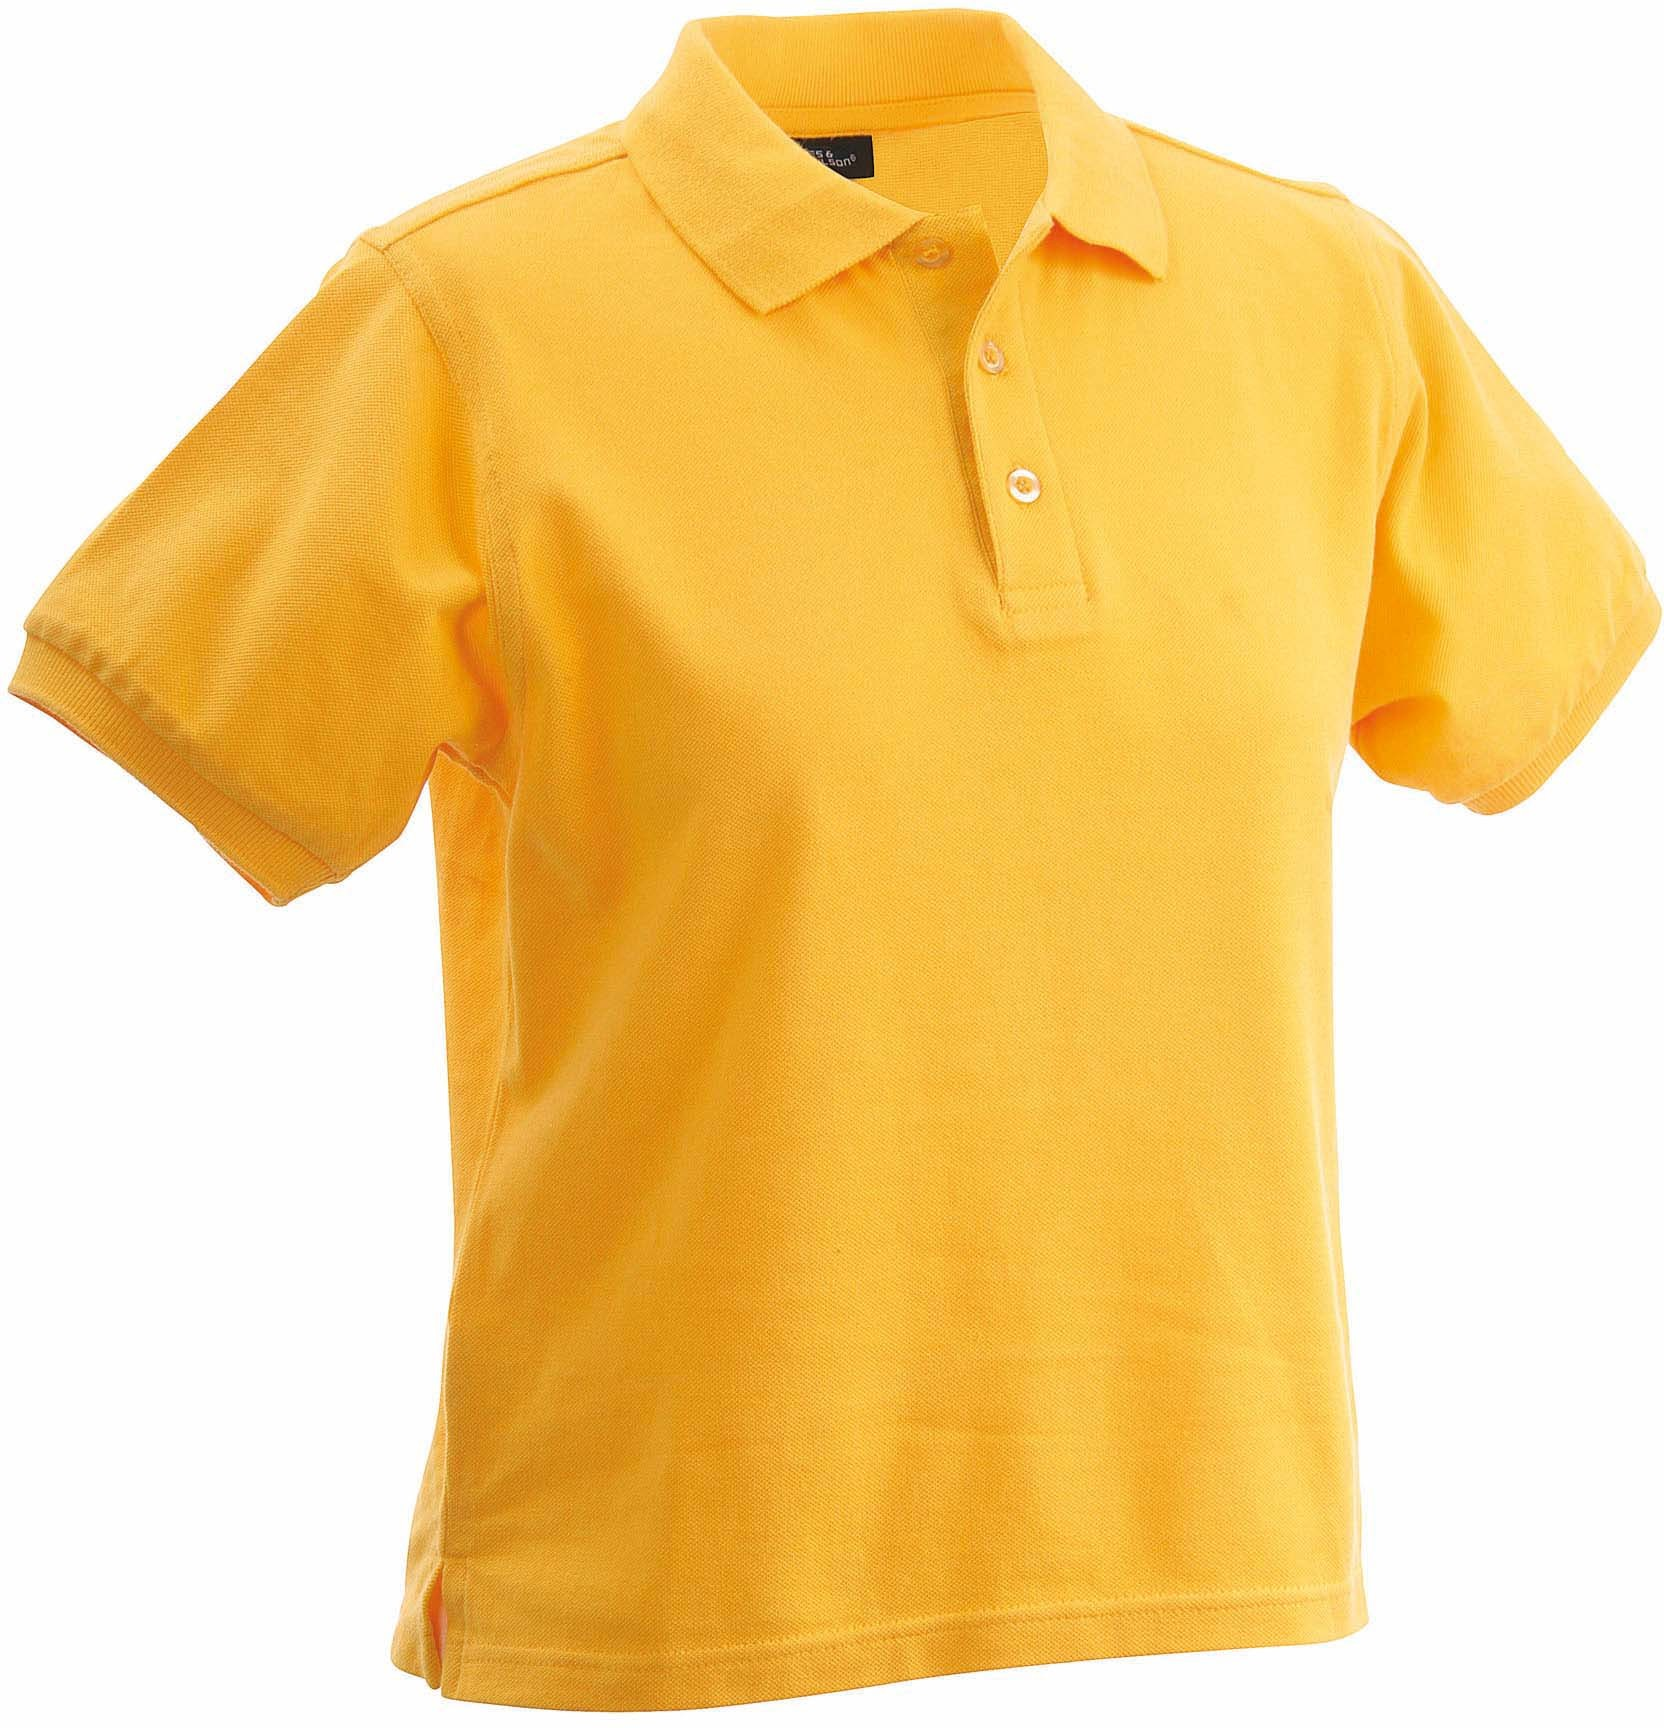 Damen-Polo-Shirt CLASSIC yellow